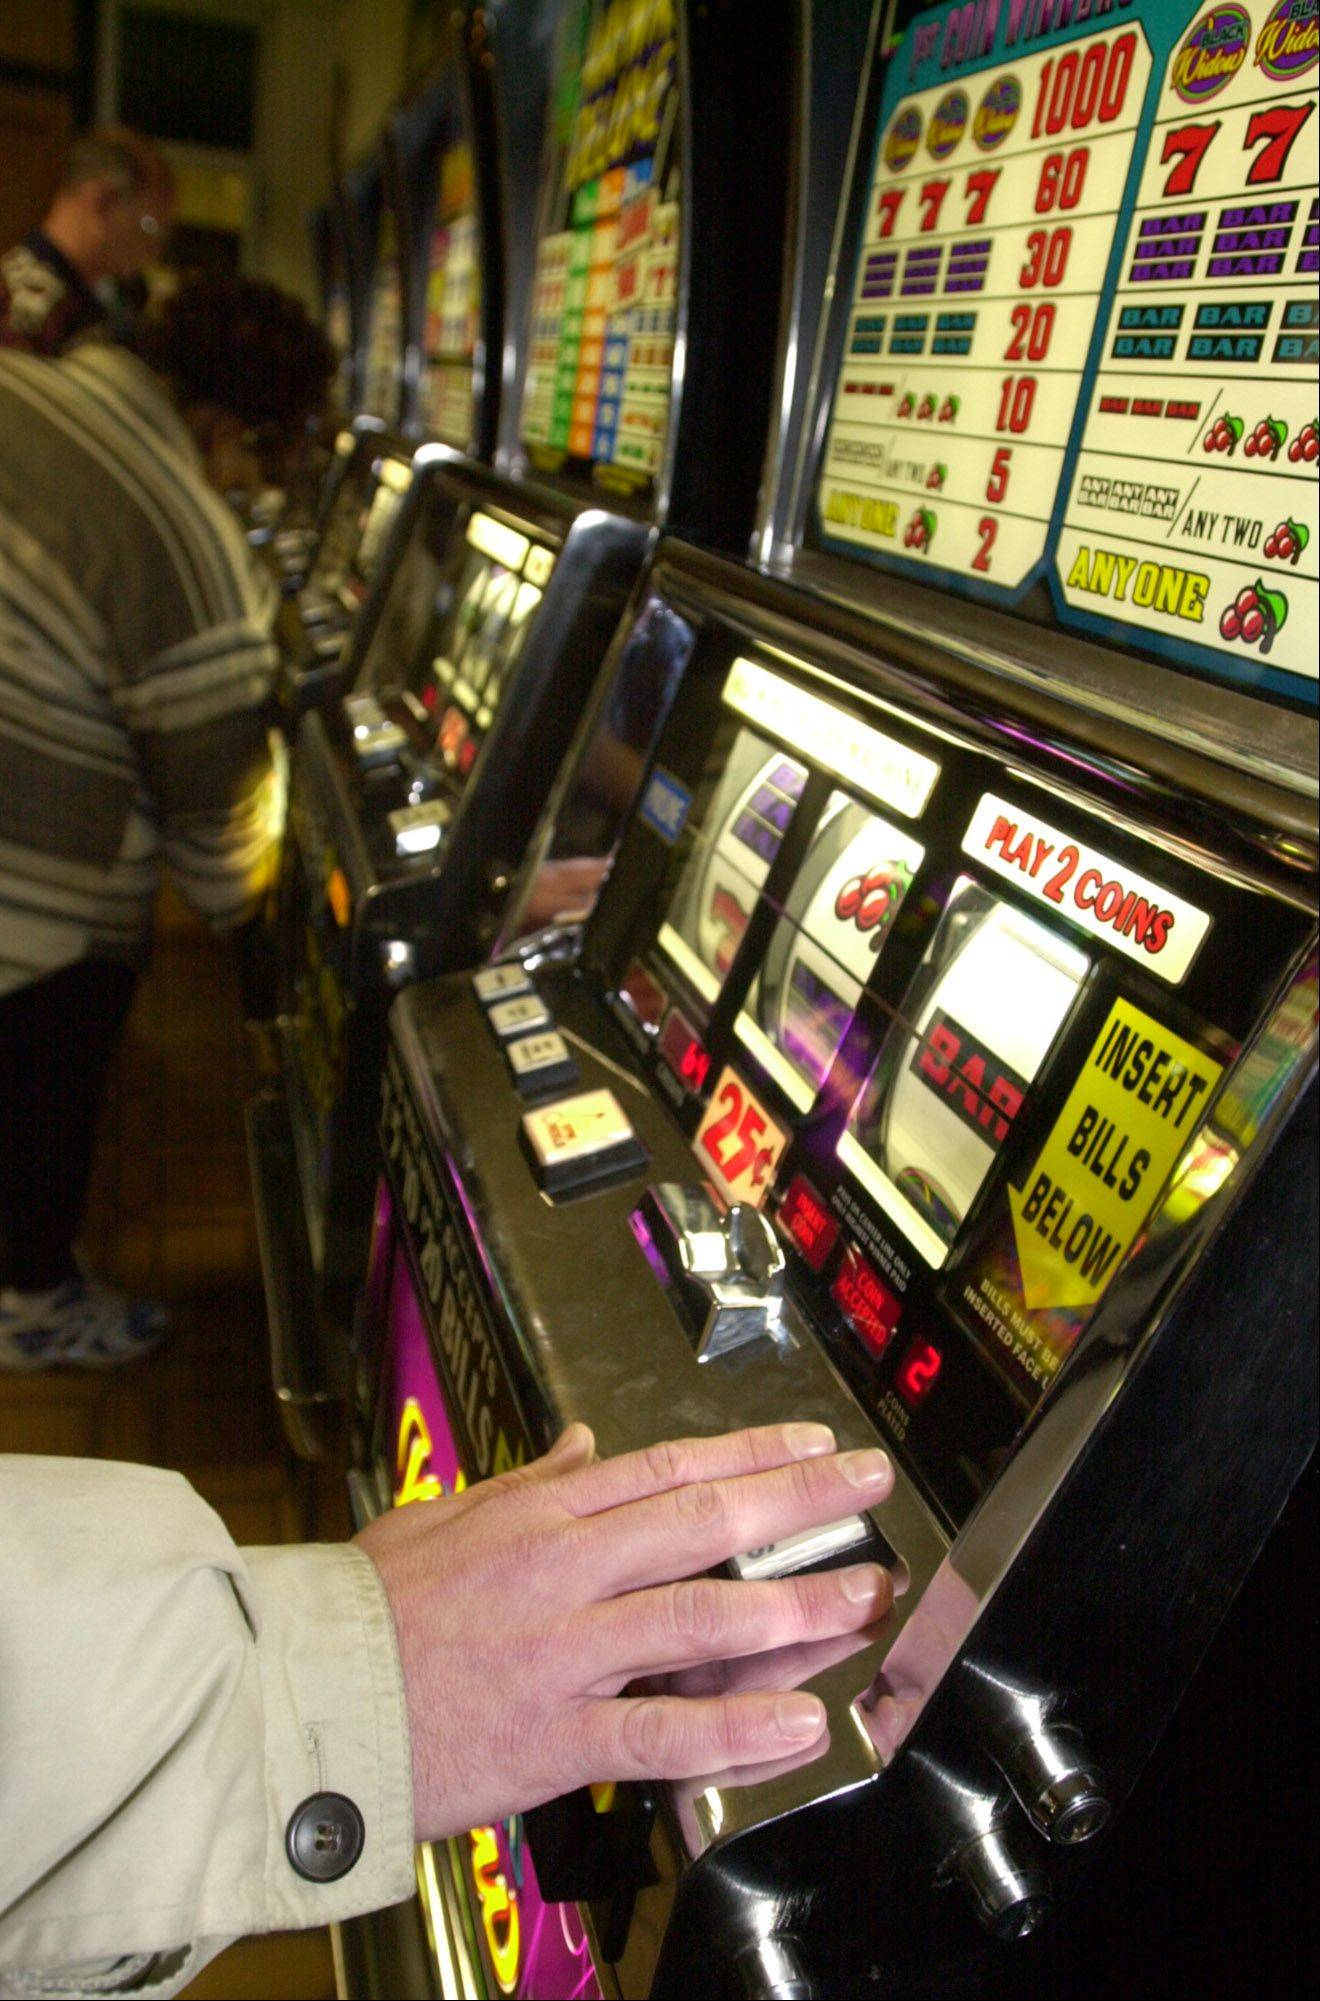 Casinos in Illinois currently are allowed to be open a maximum of 22 hours a day. (AP Photo)